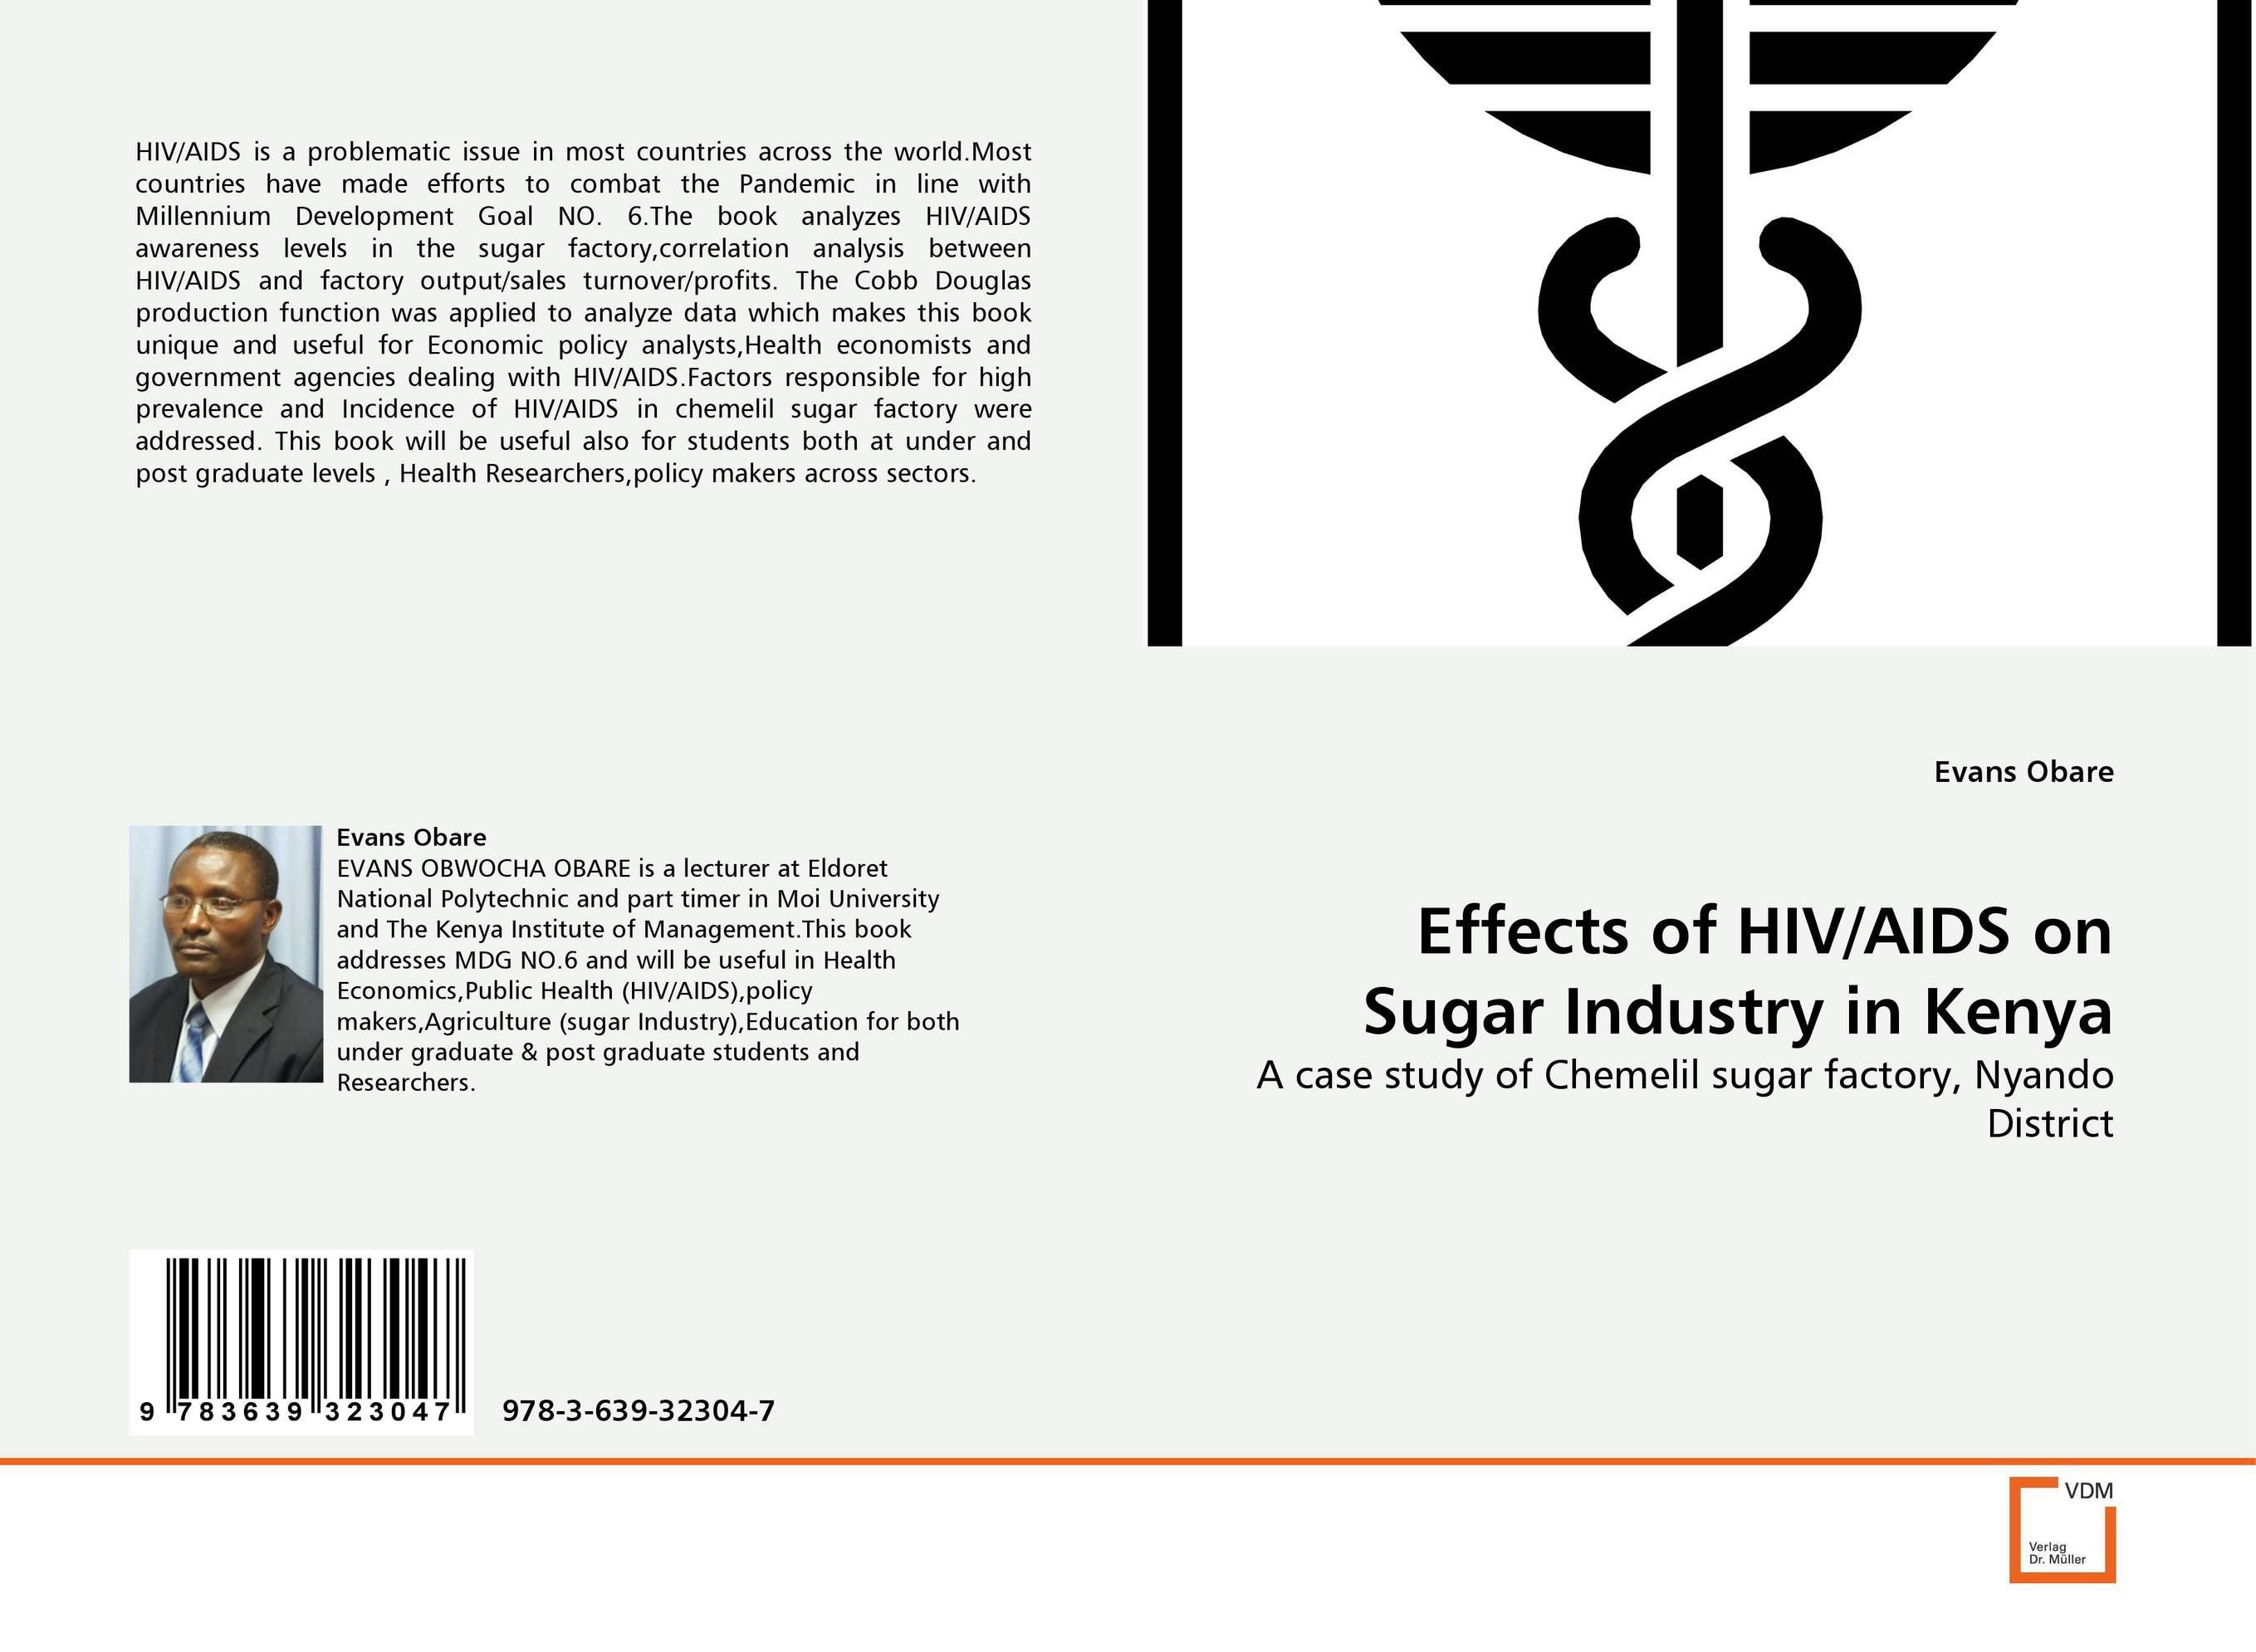 Effects of HIV/AIDS on Sugar Industry in Kenya survival analysis and stochastic modelling on hiv aids data